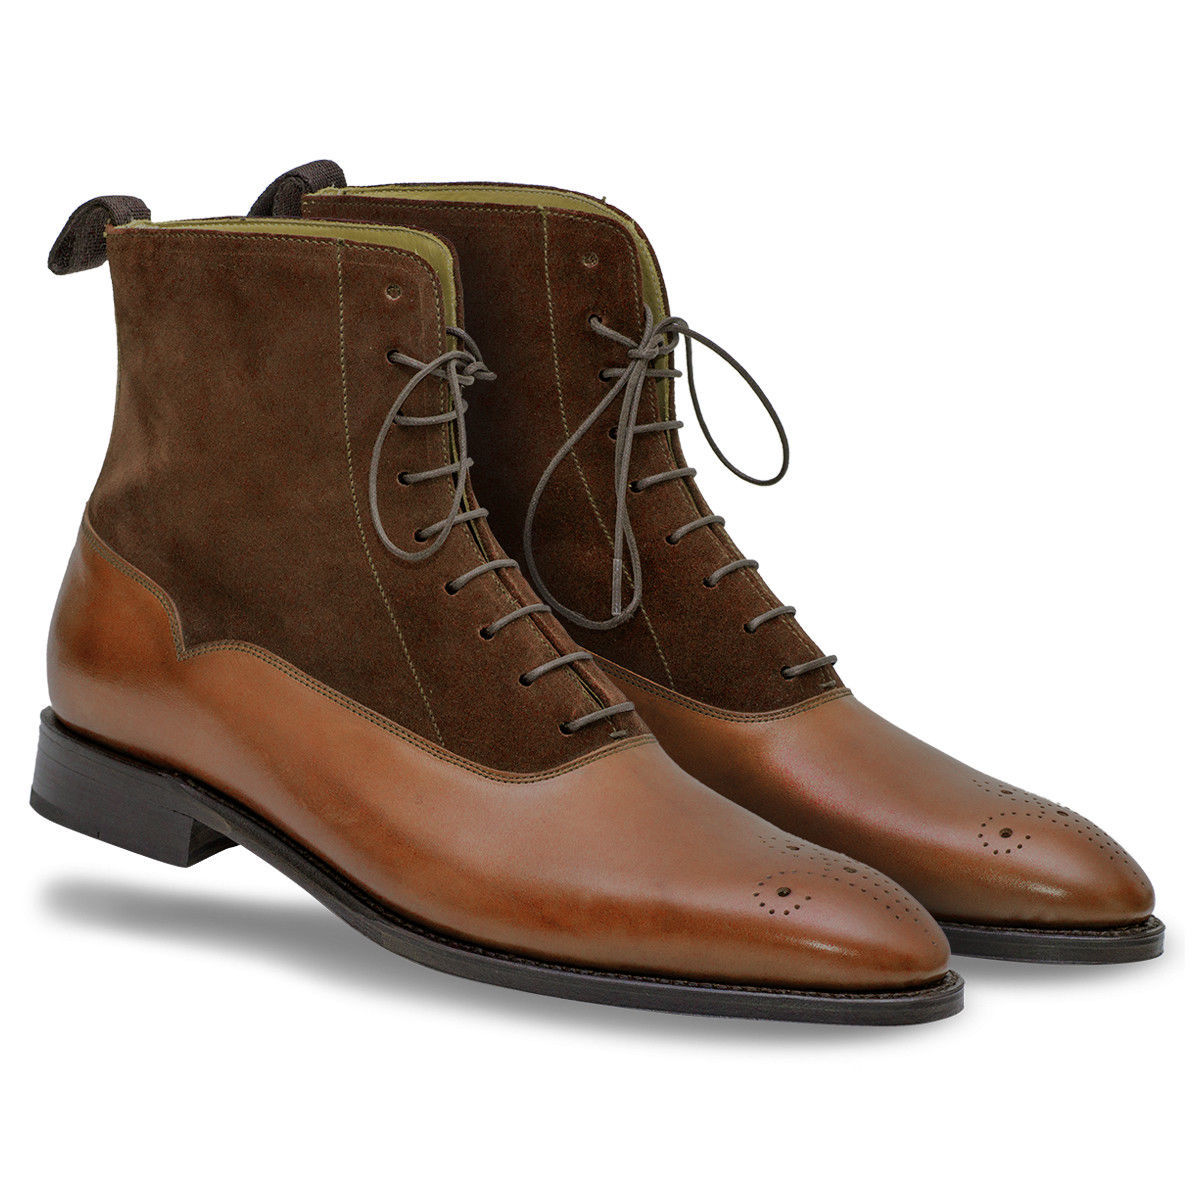 leather dress boots mens